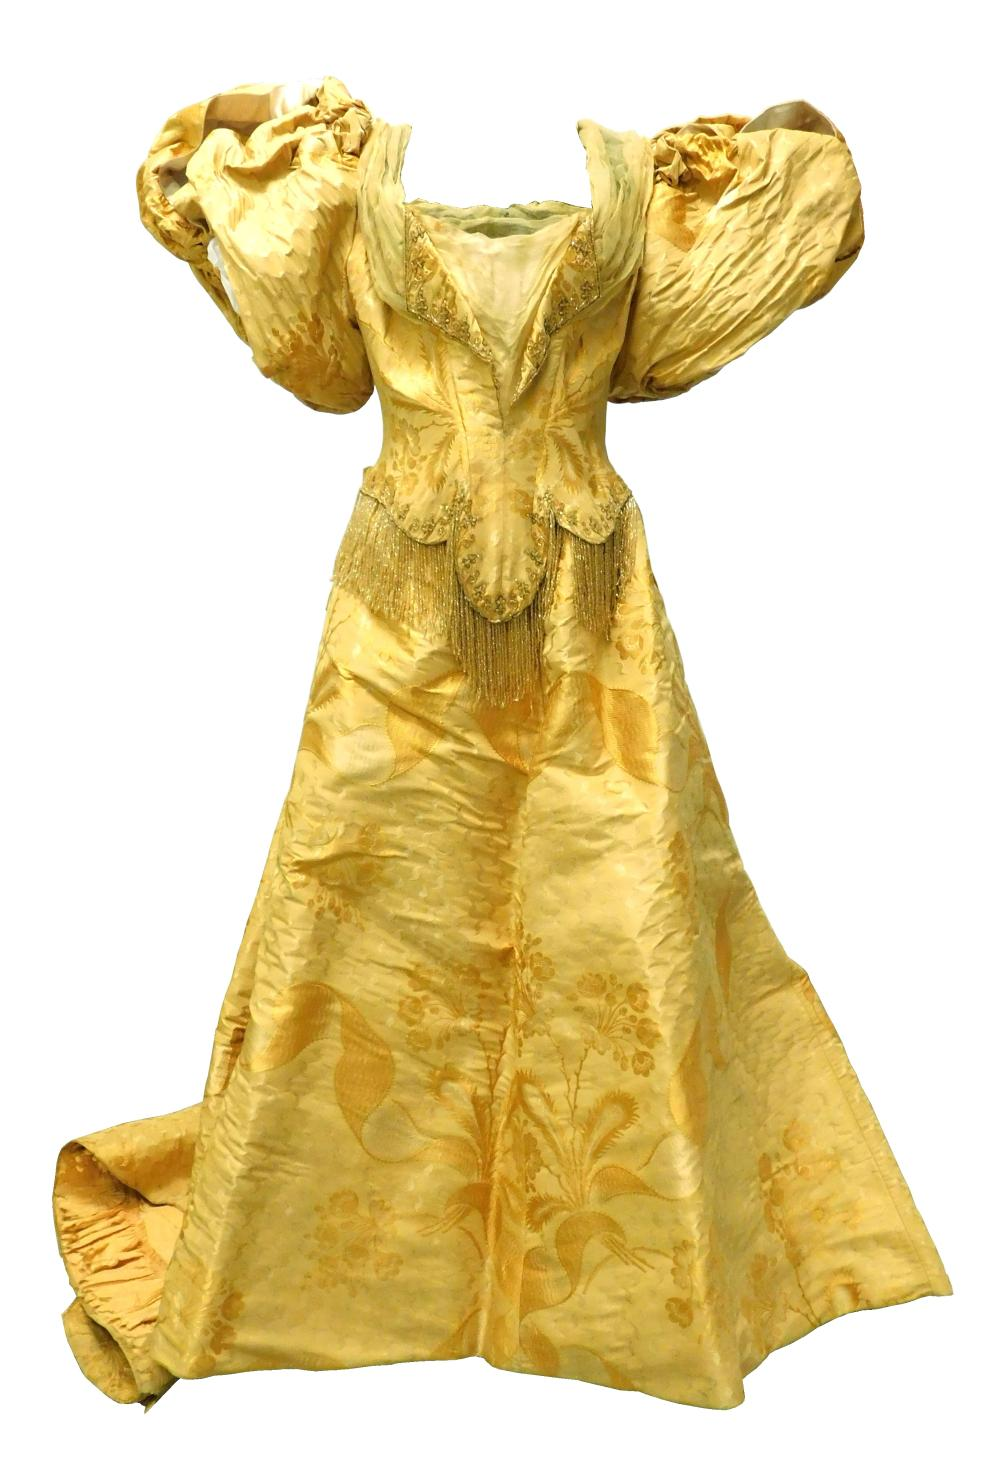 House of Worth yellow brocade with bead fringe evening dress, c. 1890's, museum provenance, two pieces, bodice and skirt, details in..